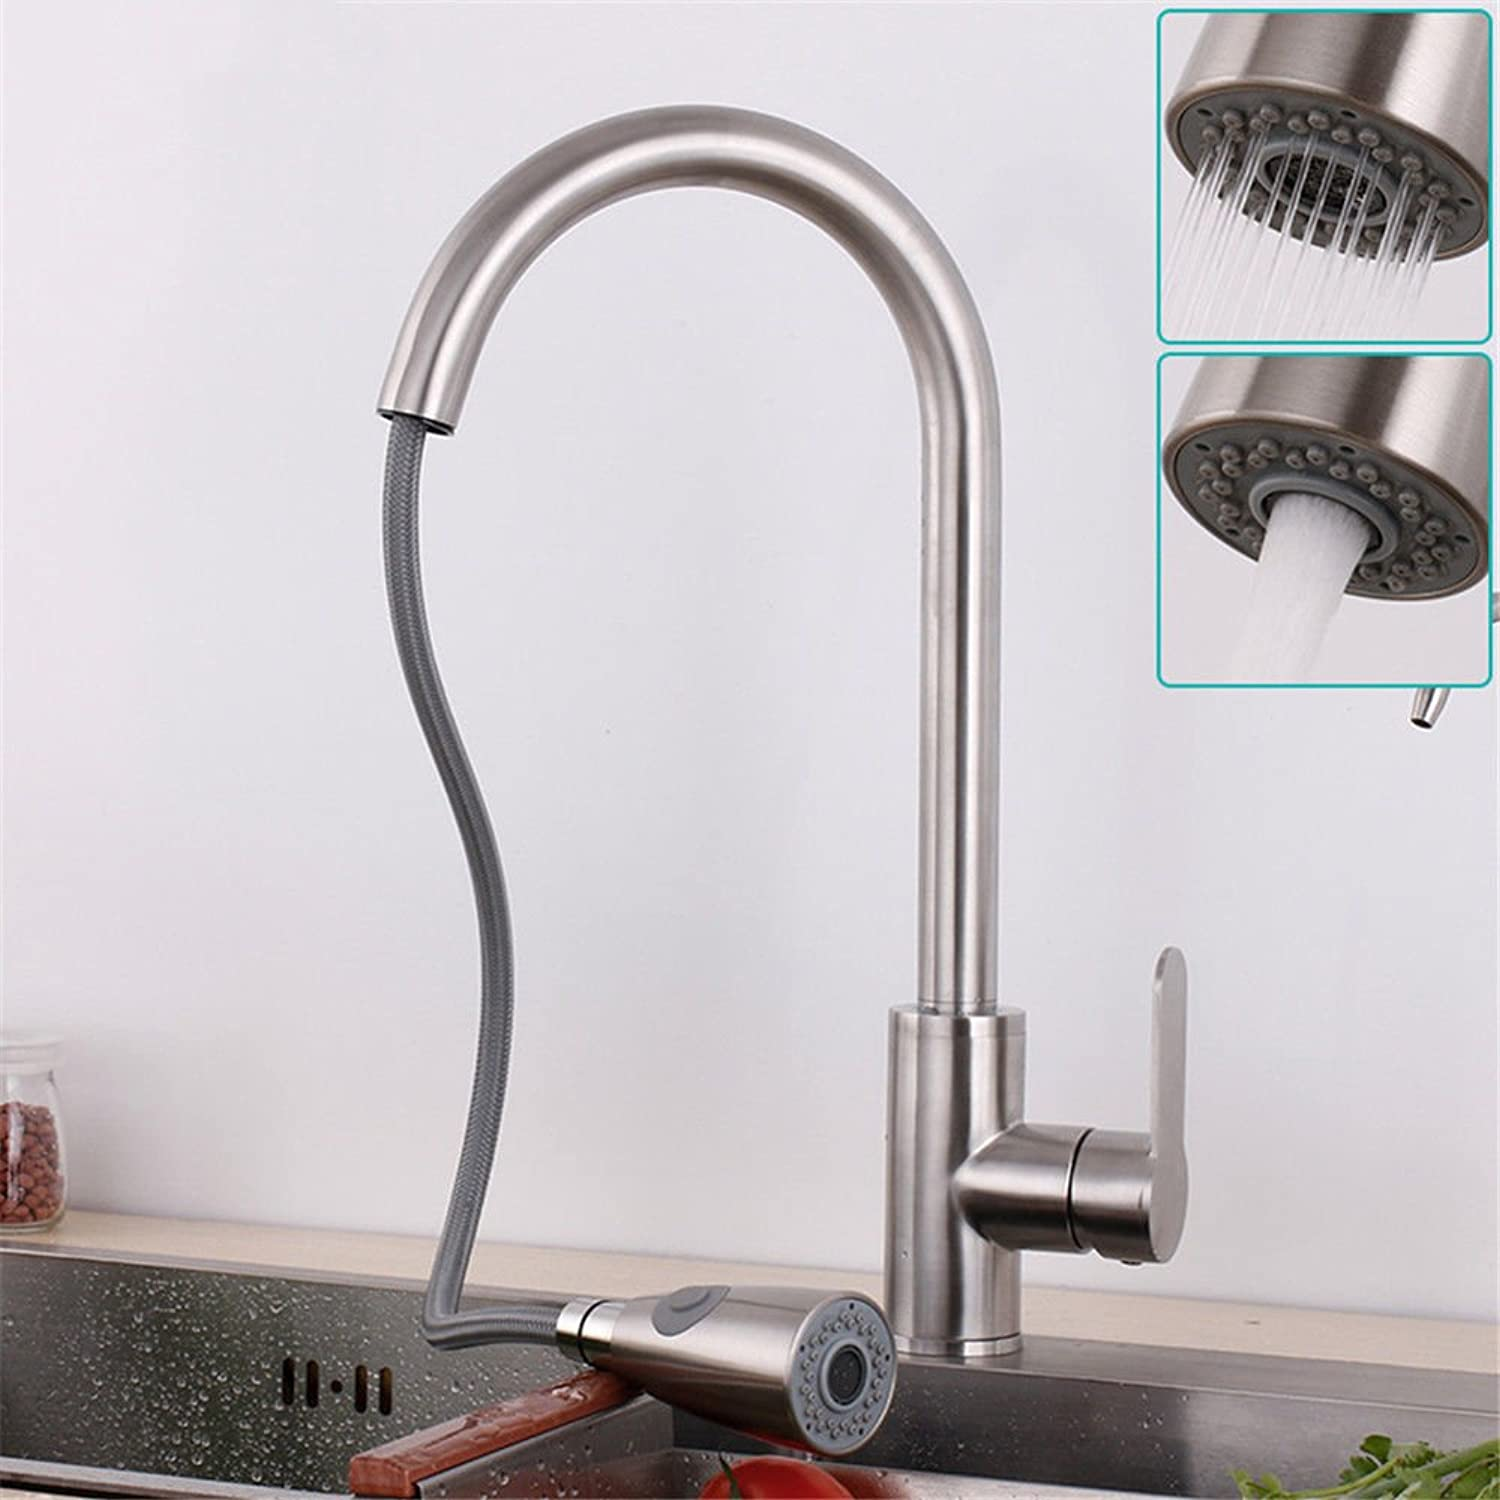 Hlluya Professional Sink Mixer Tap Kitchen Faucet Pull kitchen faucet brushed cold and hot dishes and wash basin water tank, double the cock, D.